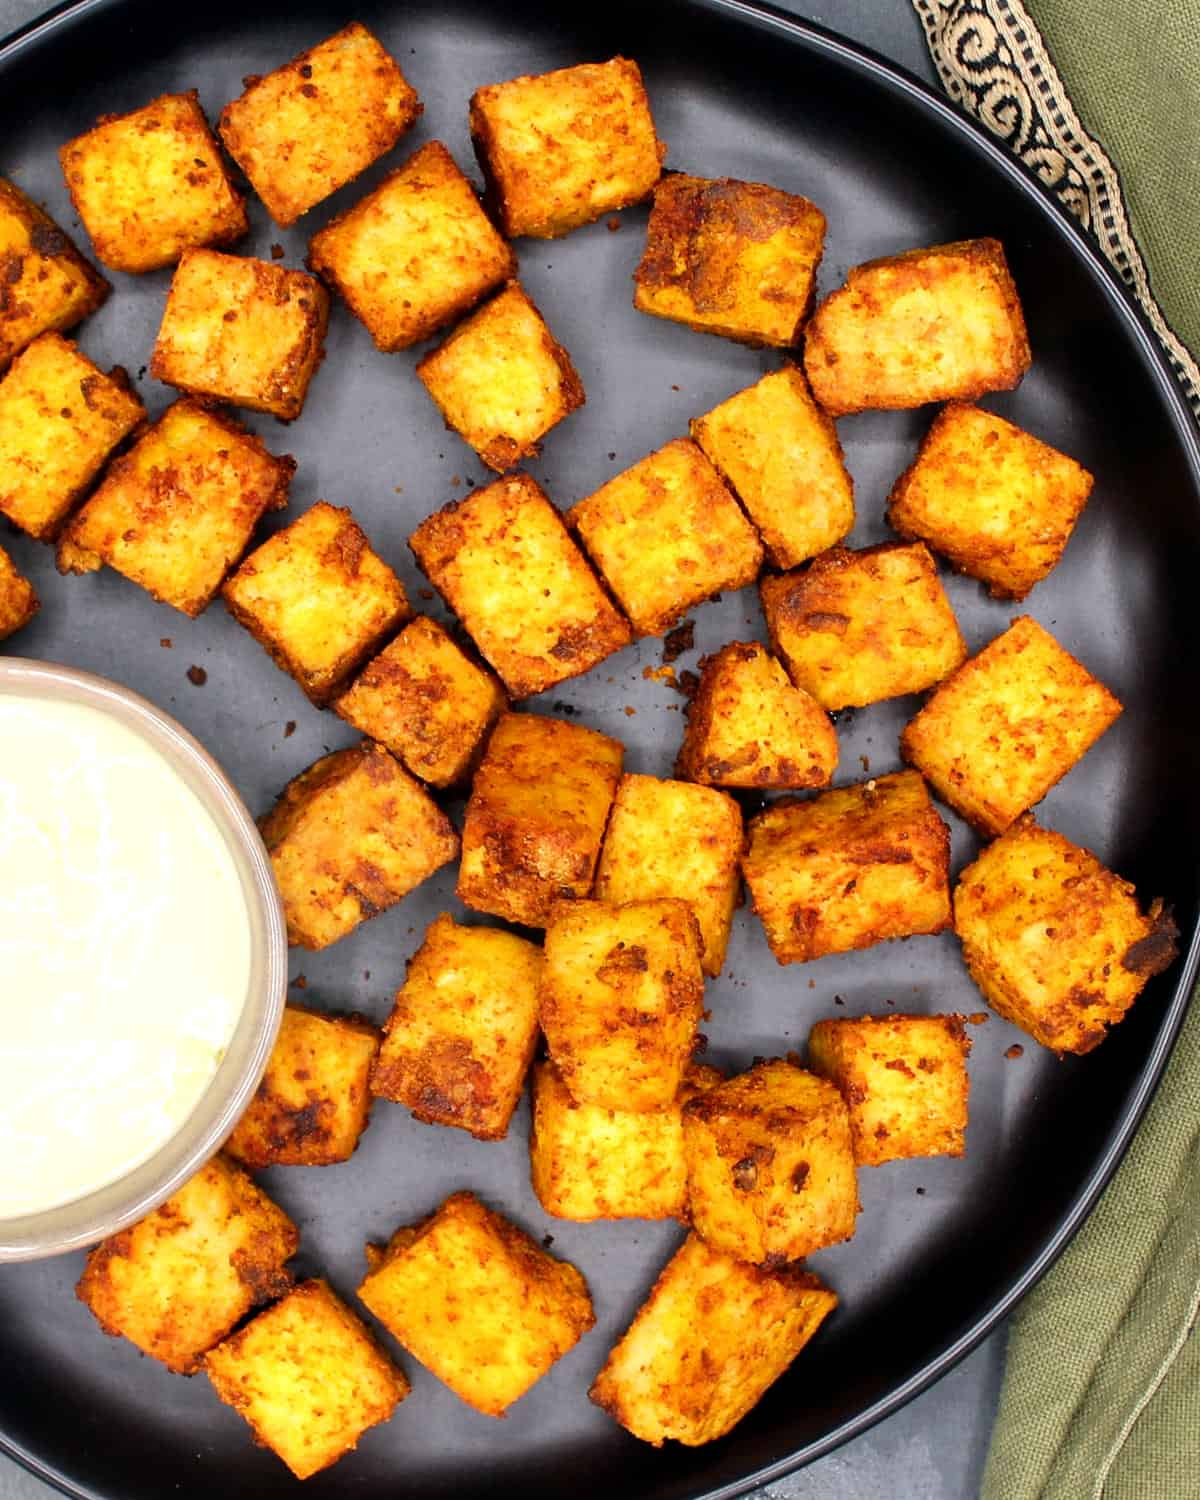 Photo of crispy air fried tofu cubes on a black plate with a mayo dipping sauce.